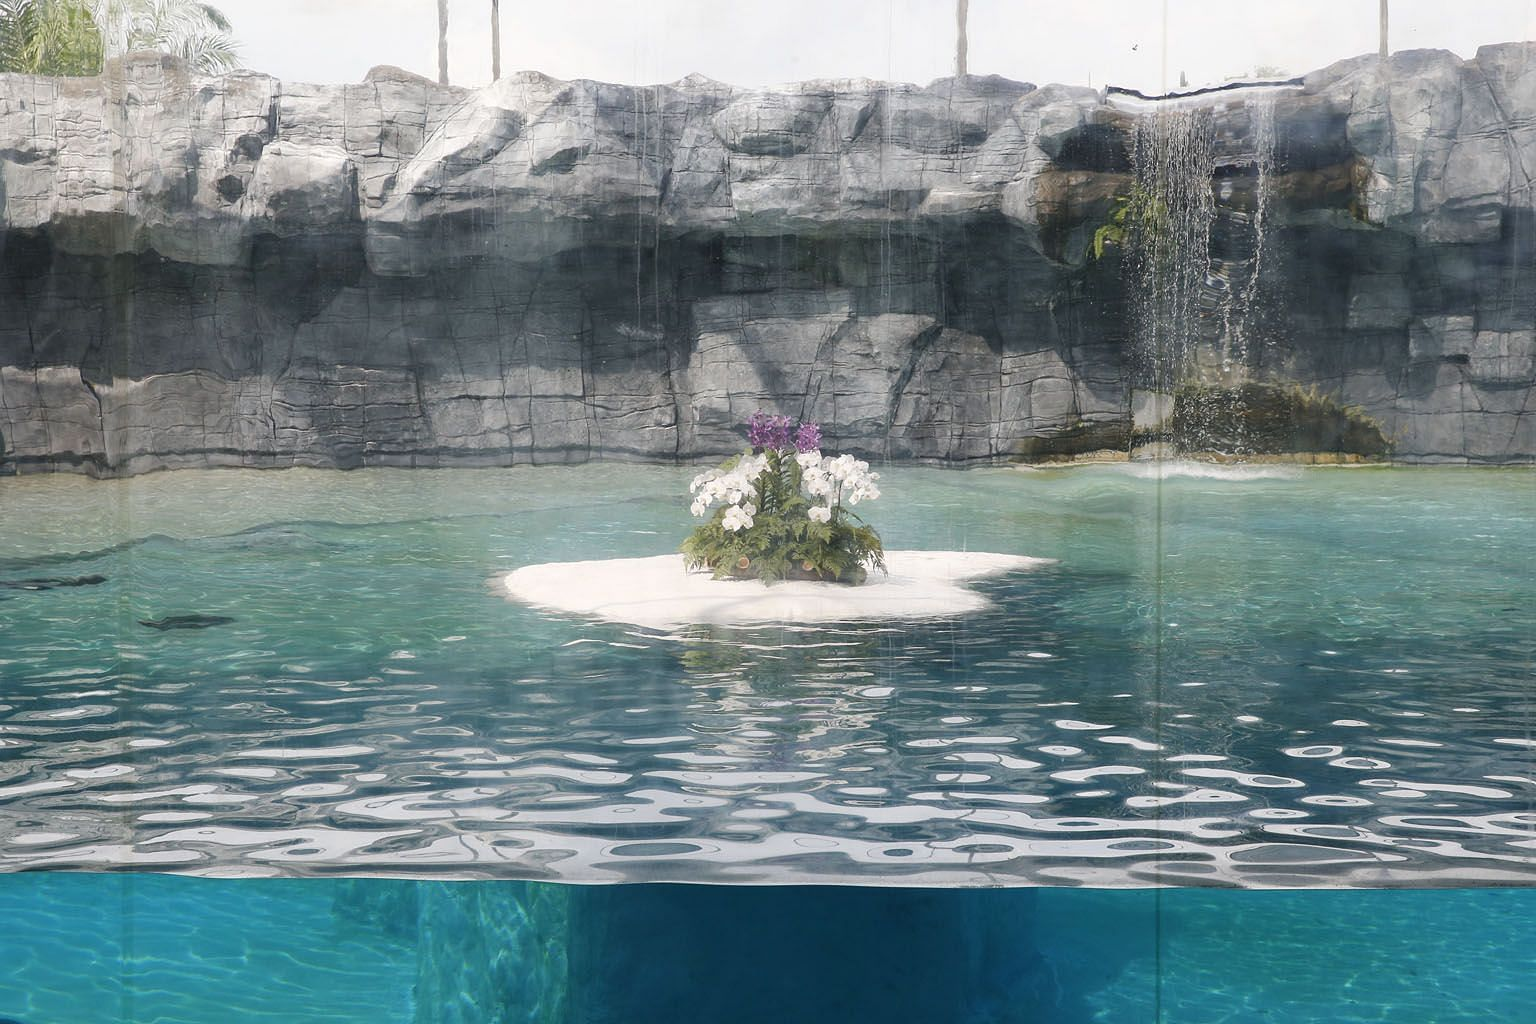 Members of the audience holding back tears as Mr Mohan Ponichamy spoke during the private tribute ceremony for Inuka yesterday at the Singapore Zoo. Below: Flowers placed in Inuka's enclosure after he was put down humanely on Wednesday following a me